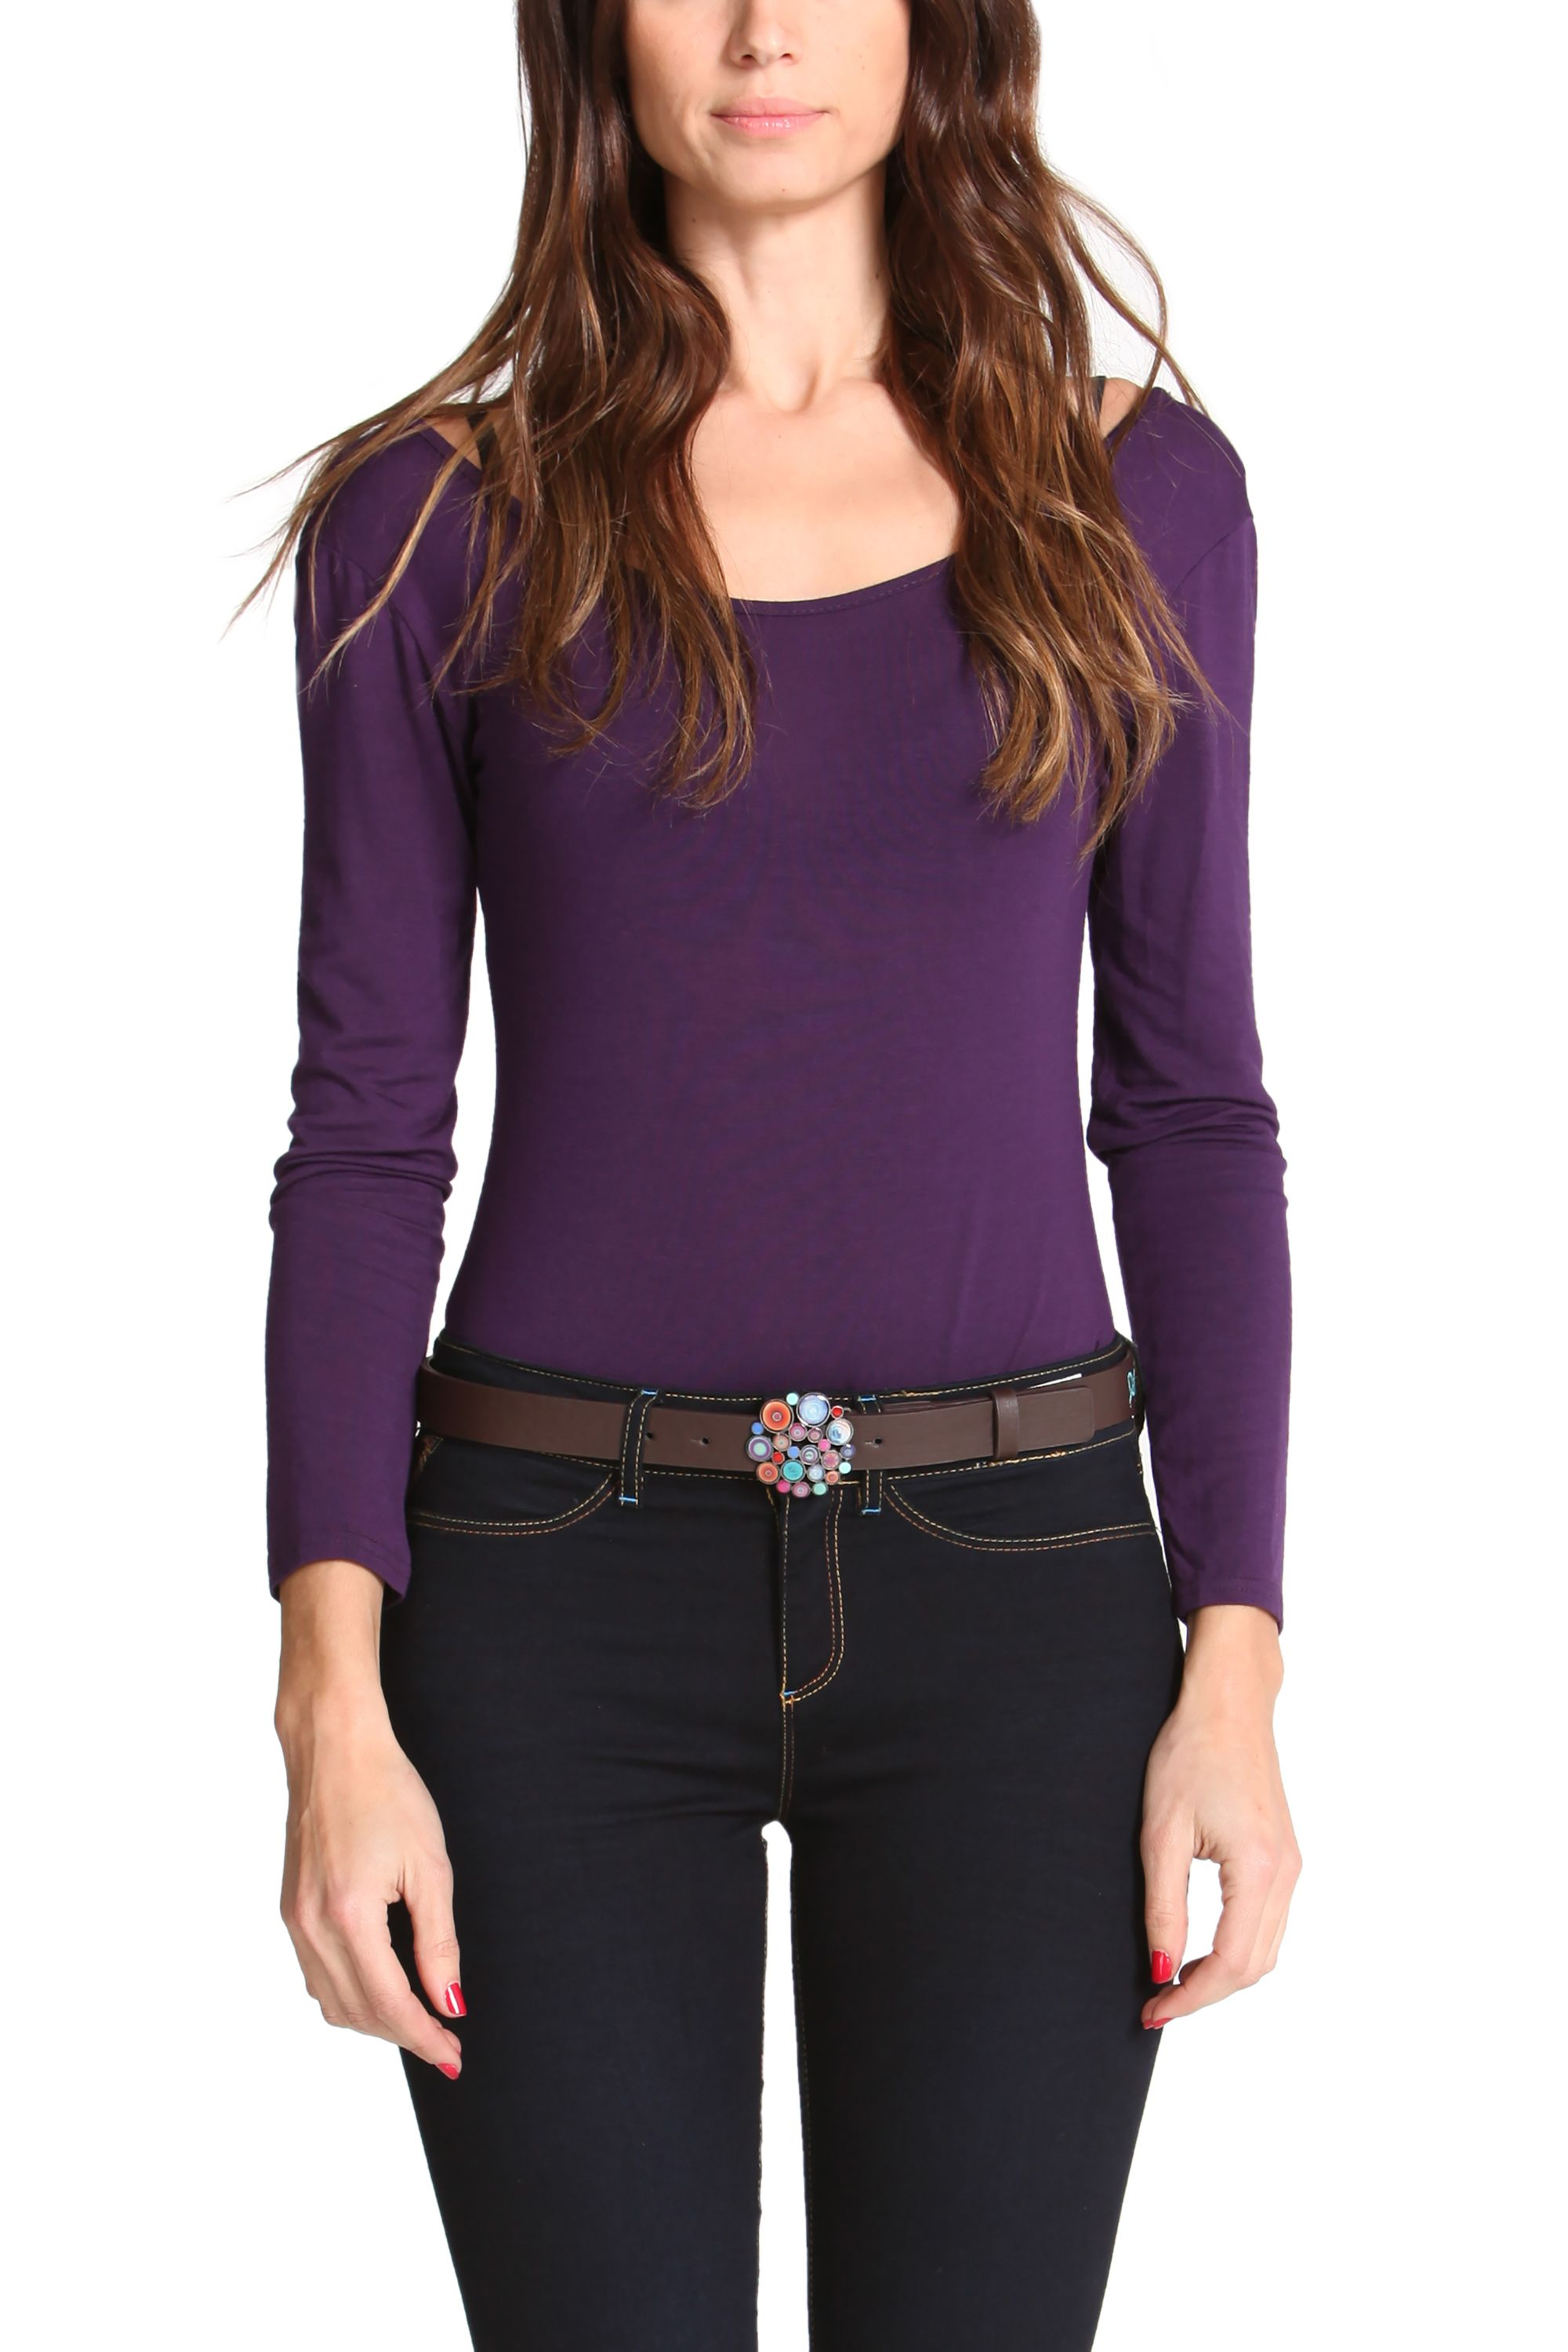 Jupiter clasp metal carry belt